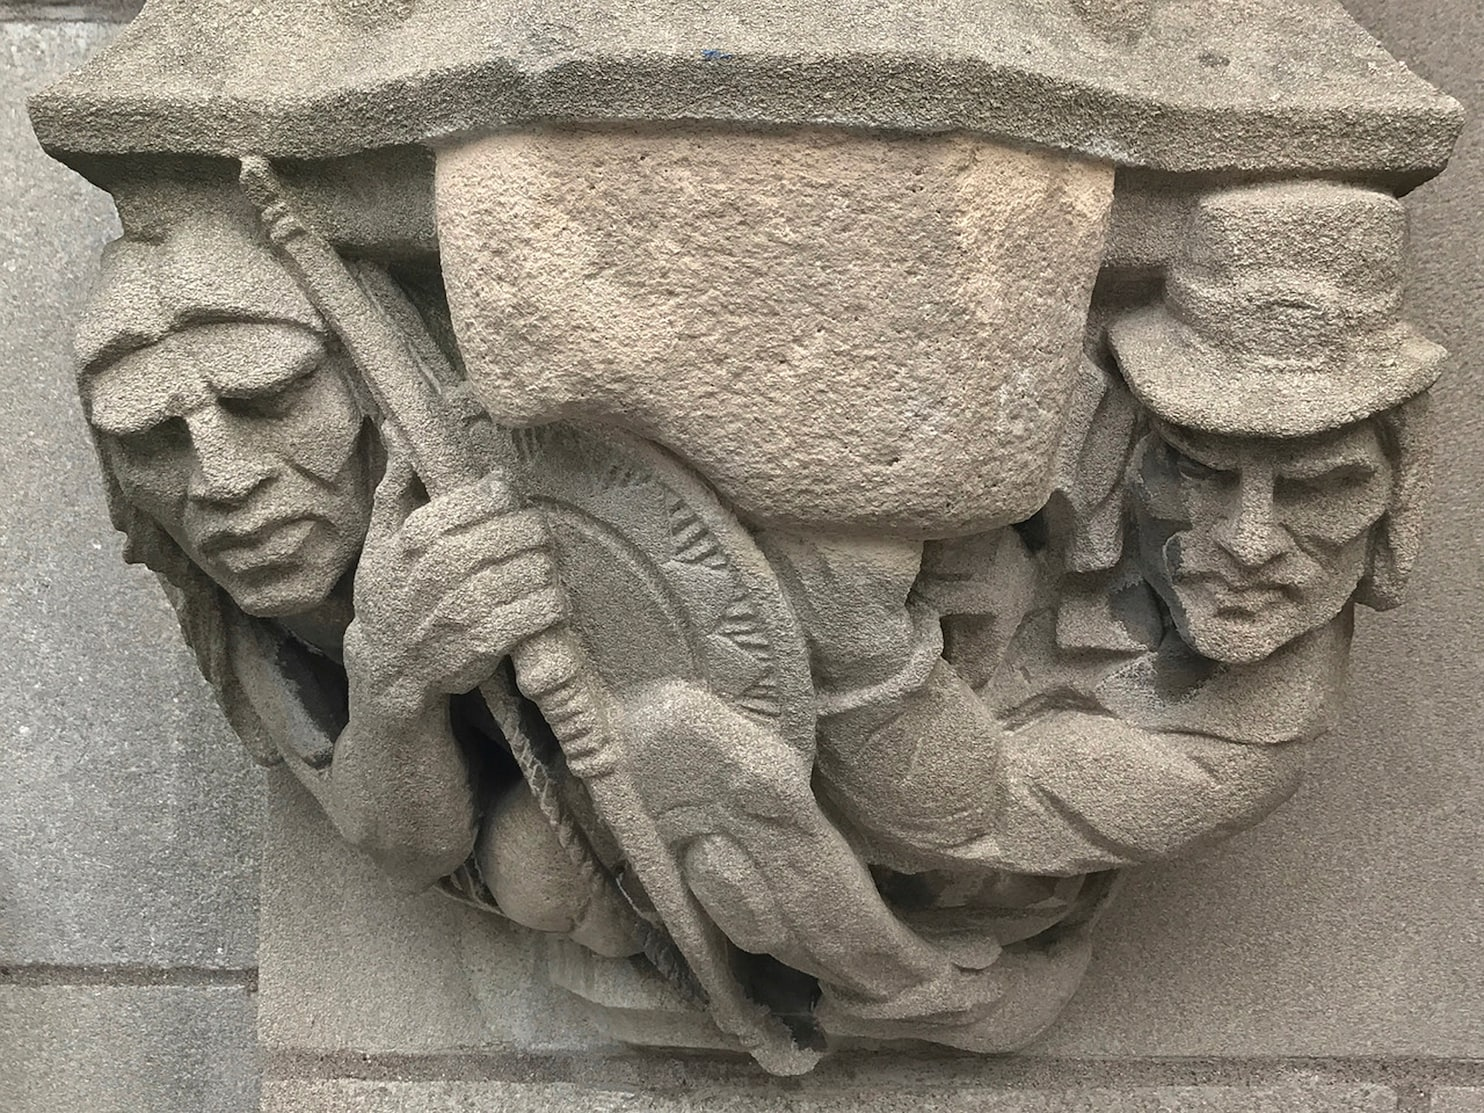 Yale Saves Fragile Students Carving Of Musket